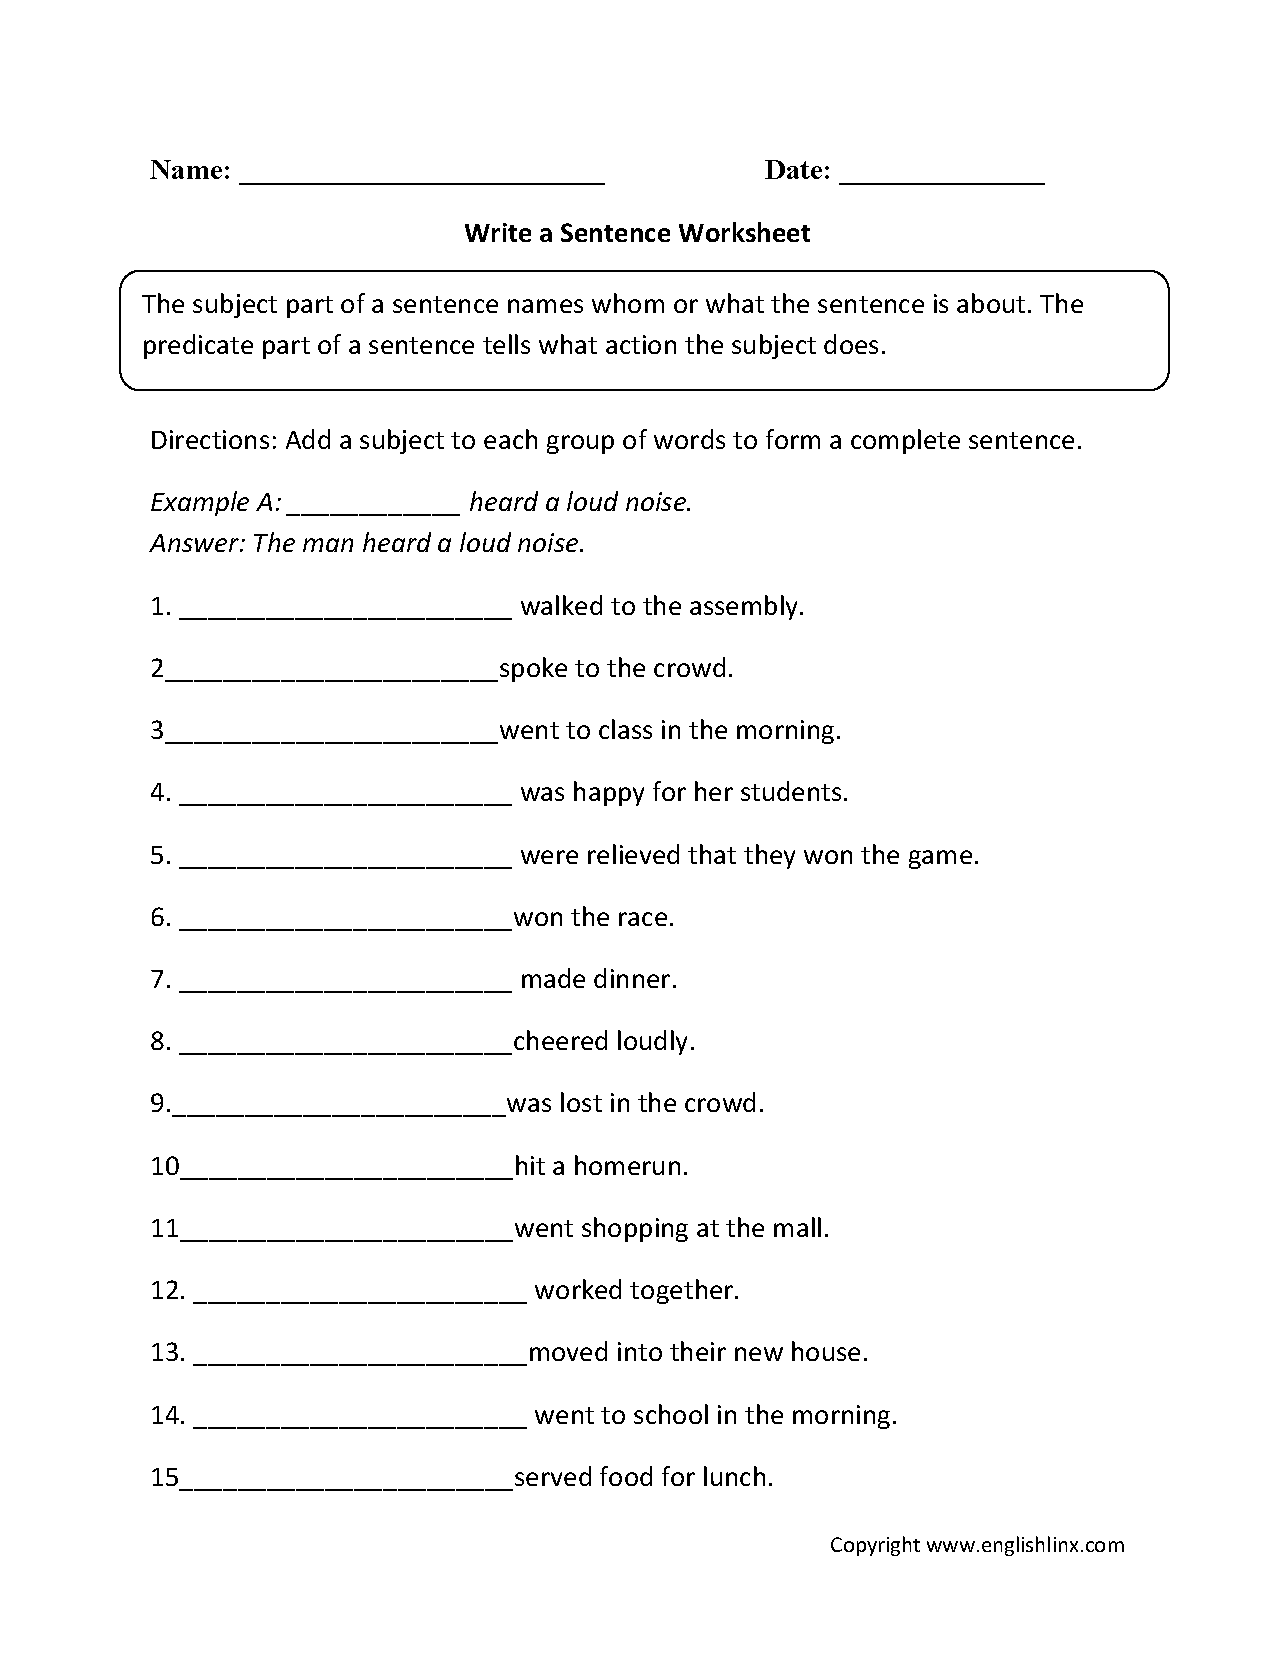 Worksheets Building Sentences Worksheets sentence structure worksheets building write a worksheet